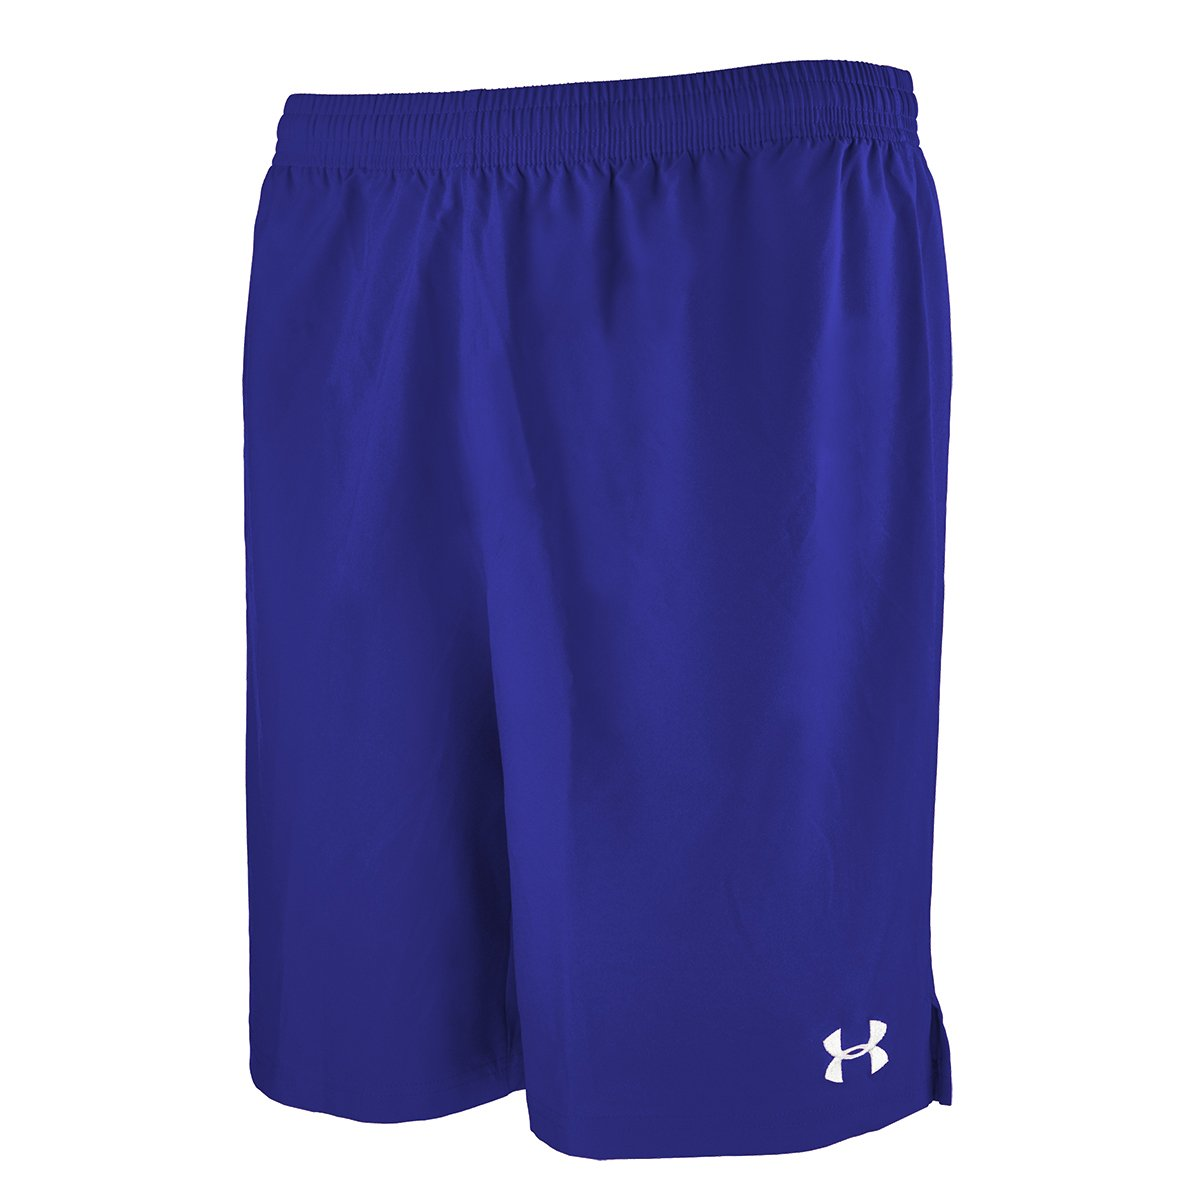 Under ArmourメンズHustle Soccer Shorts B00Y2T67MU Medium|ロイヤル ロイヤル Medium